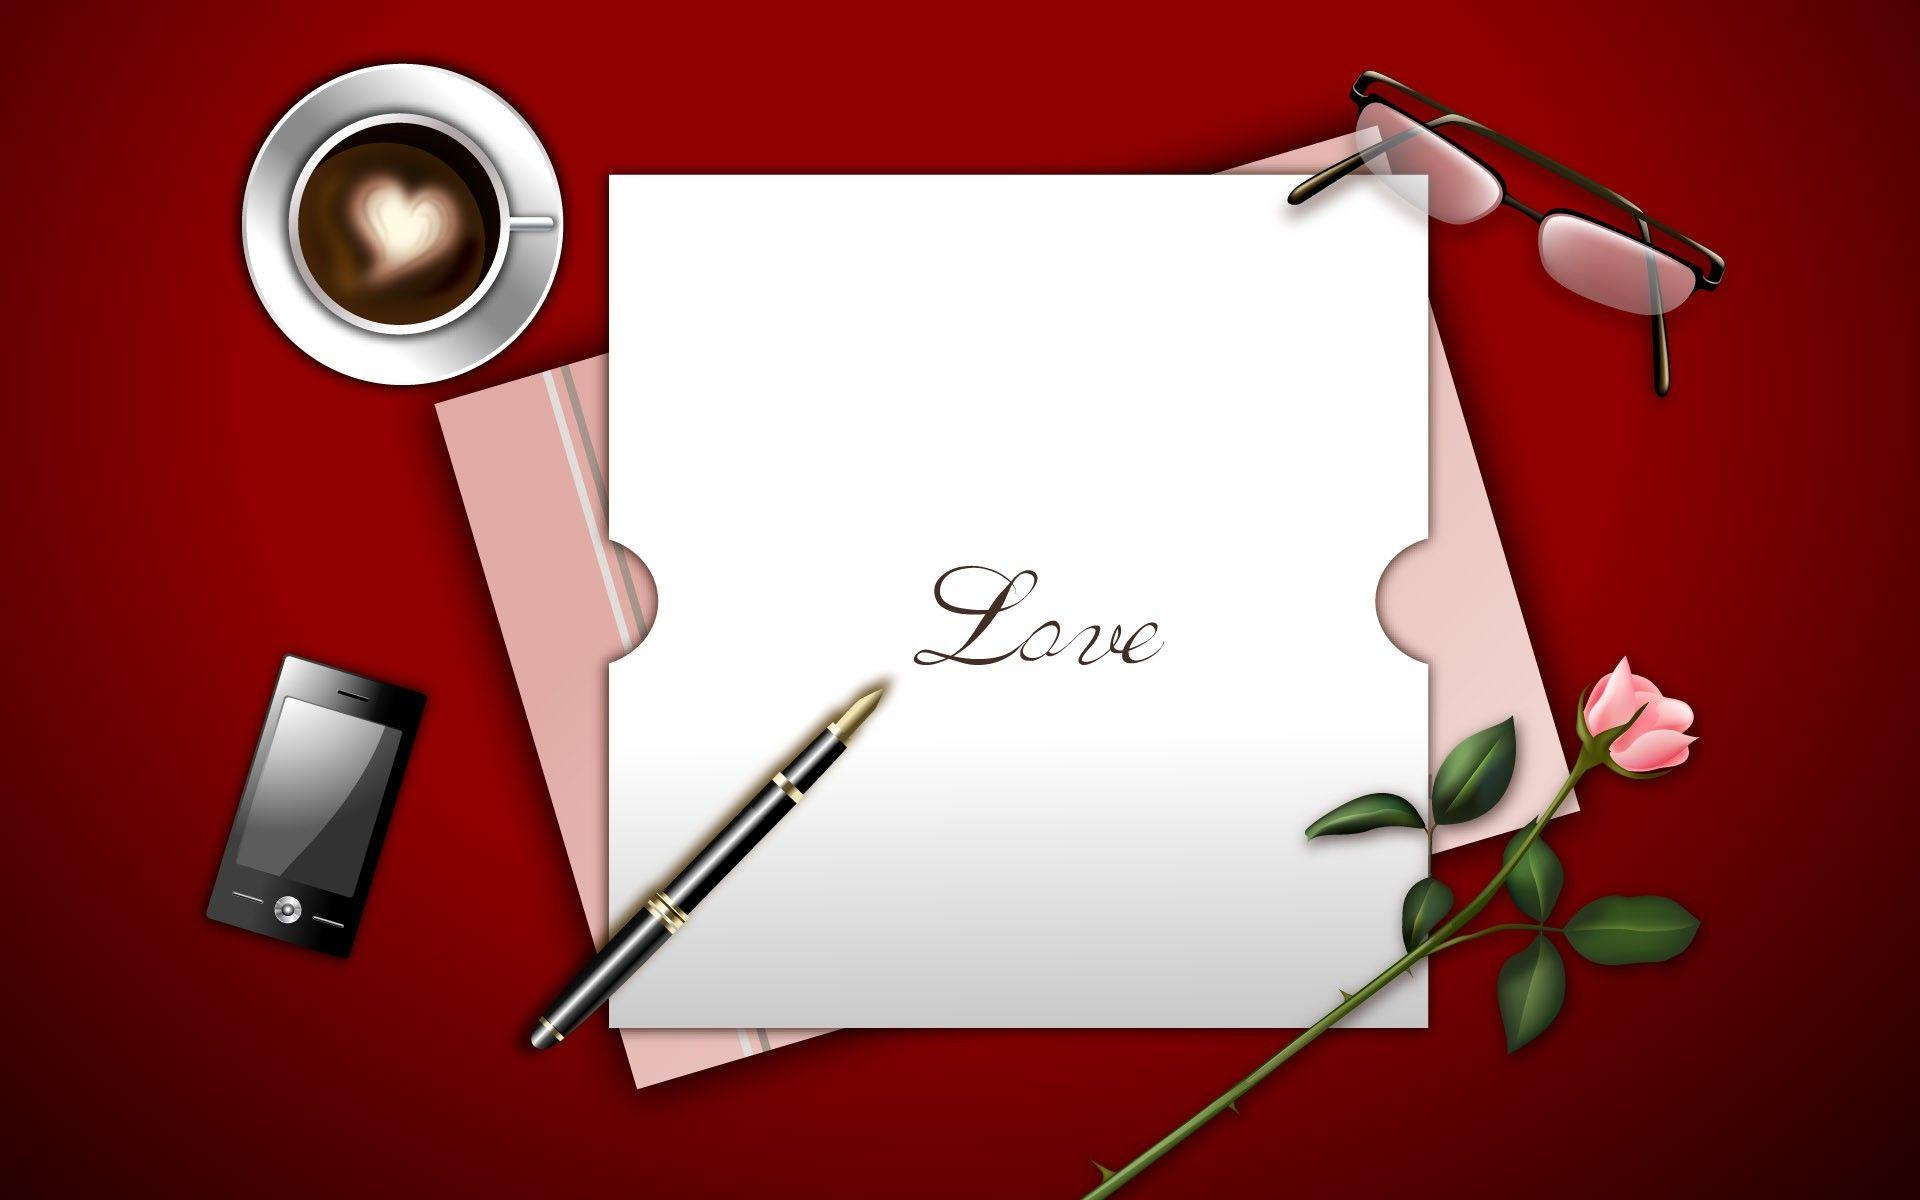 Love Wallpaper Of Alphabet A : Love Letter Wallpapers - Wallpaper cave